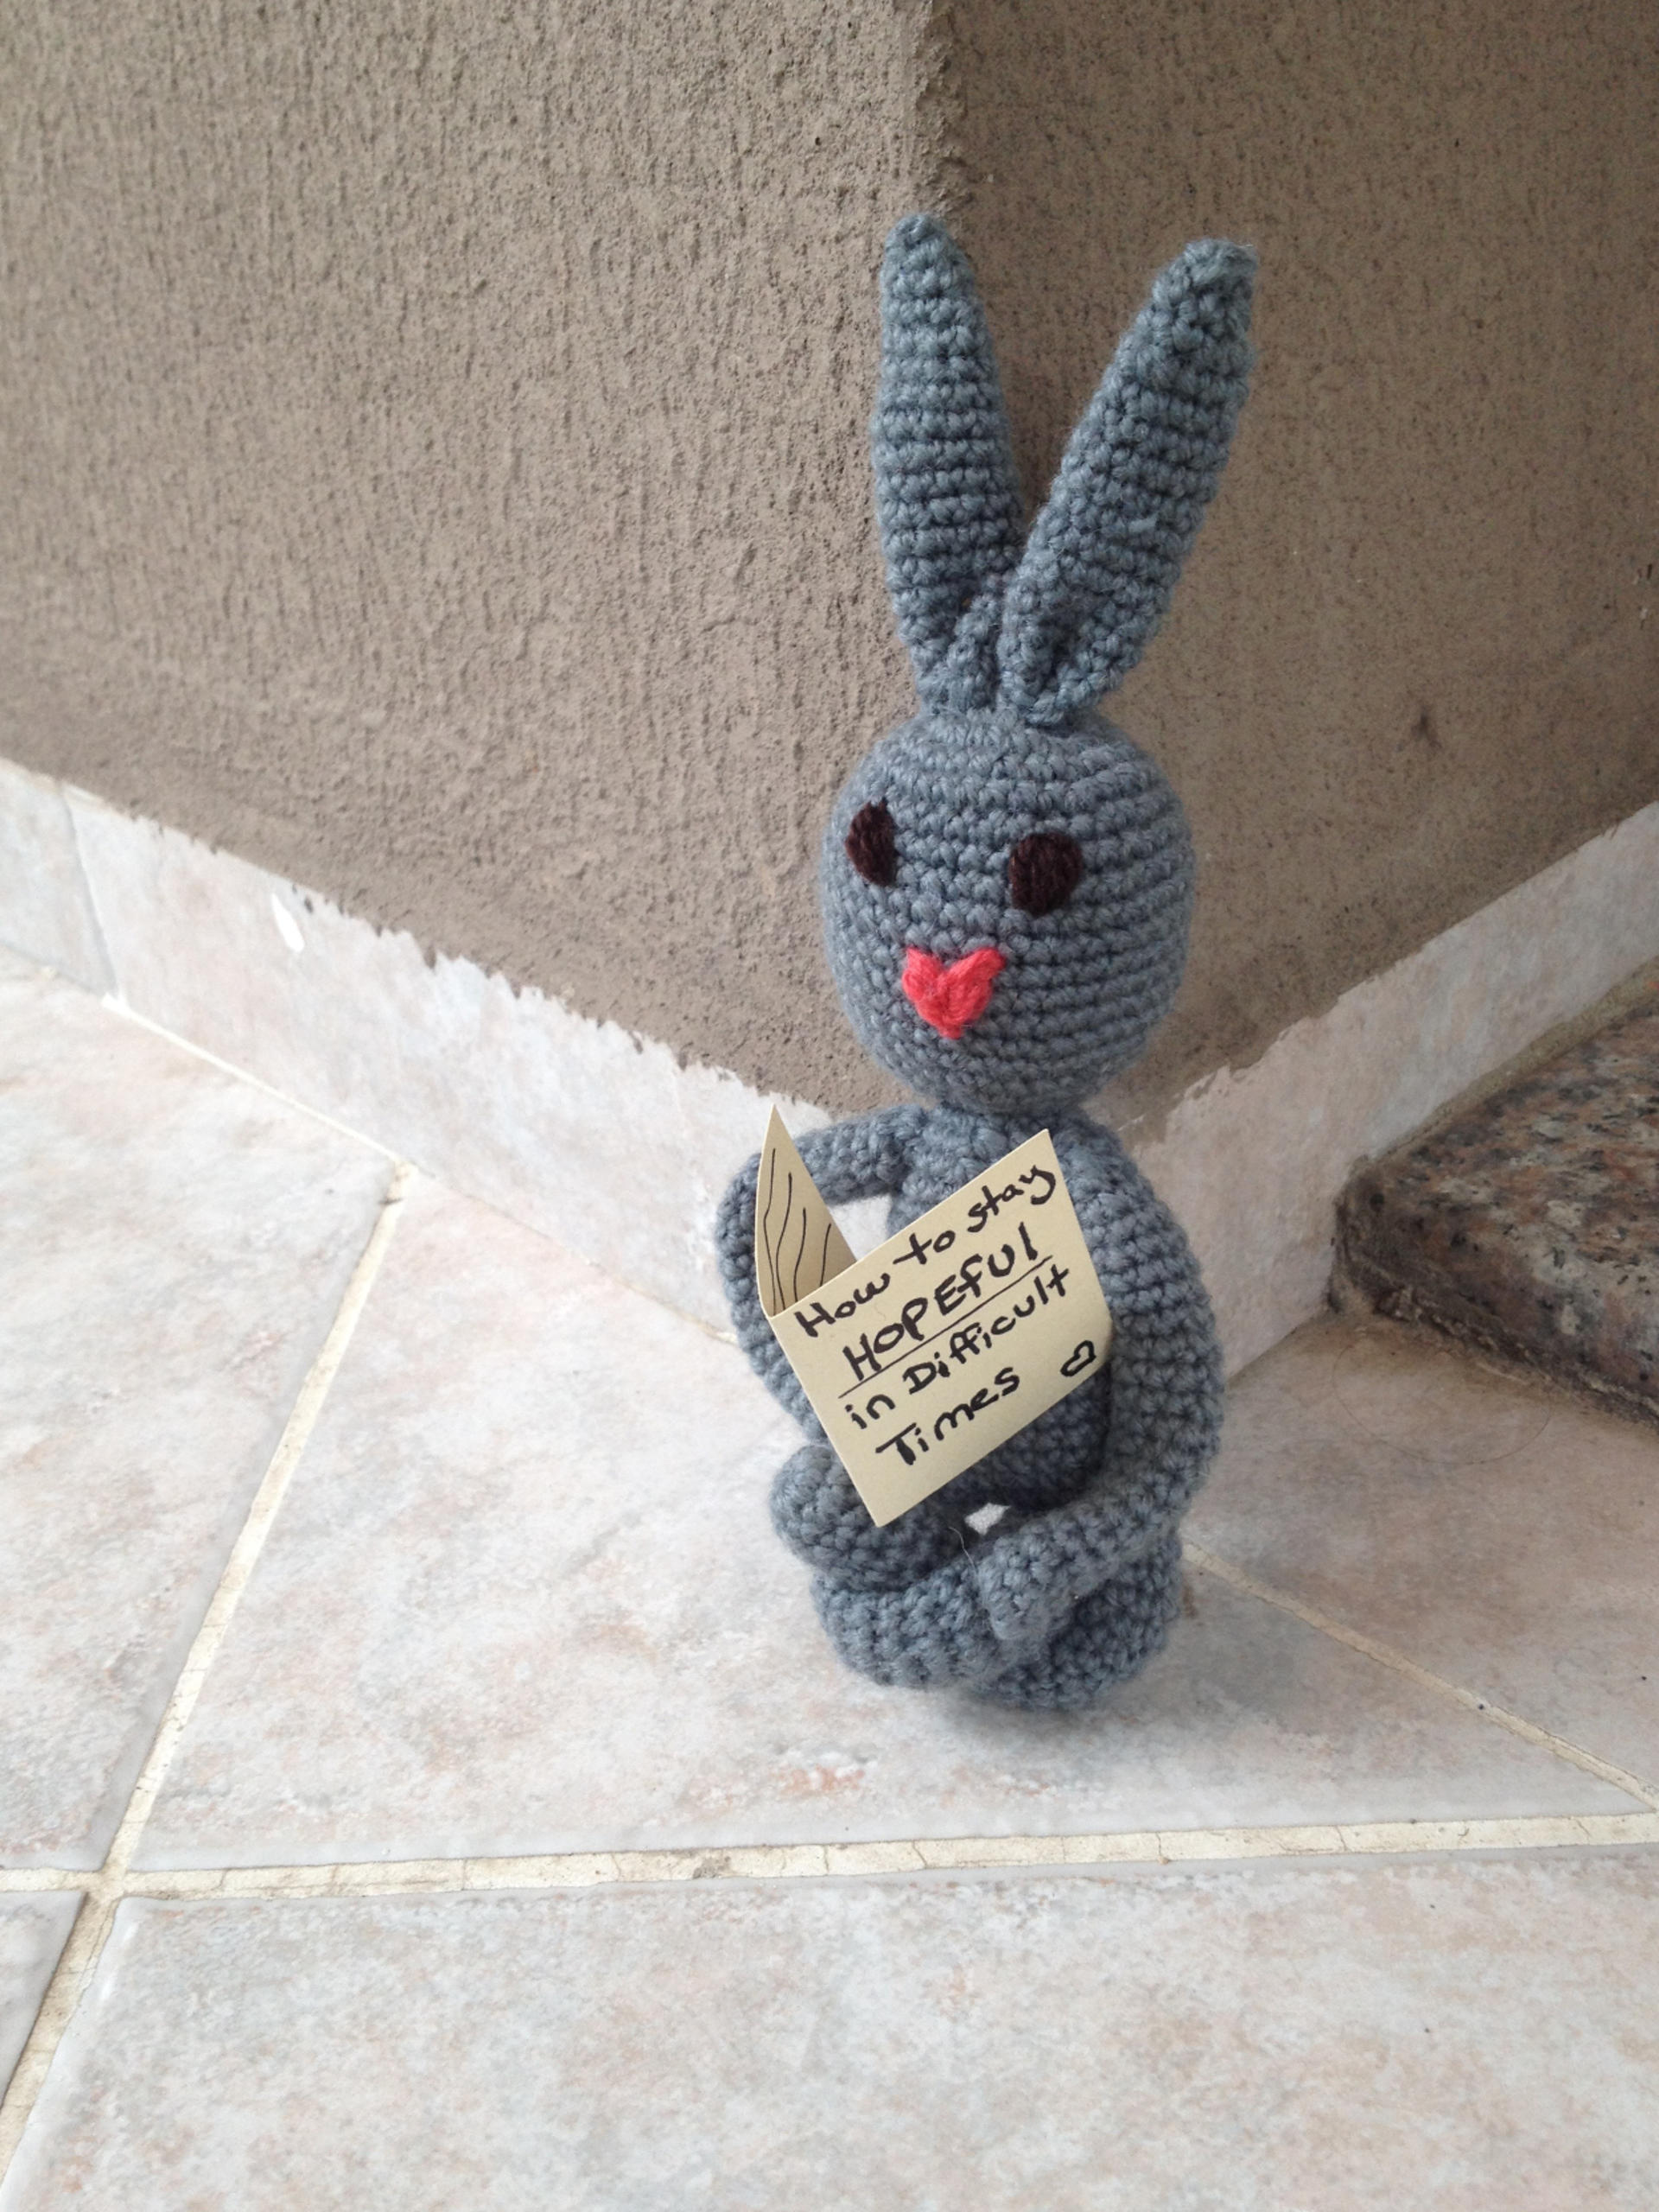 Amal - comfort bunny - knitted by Syrian refugee women in Turkey - help and smile